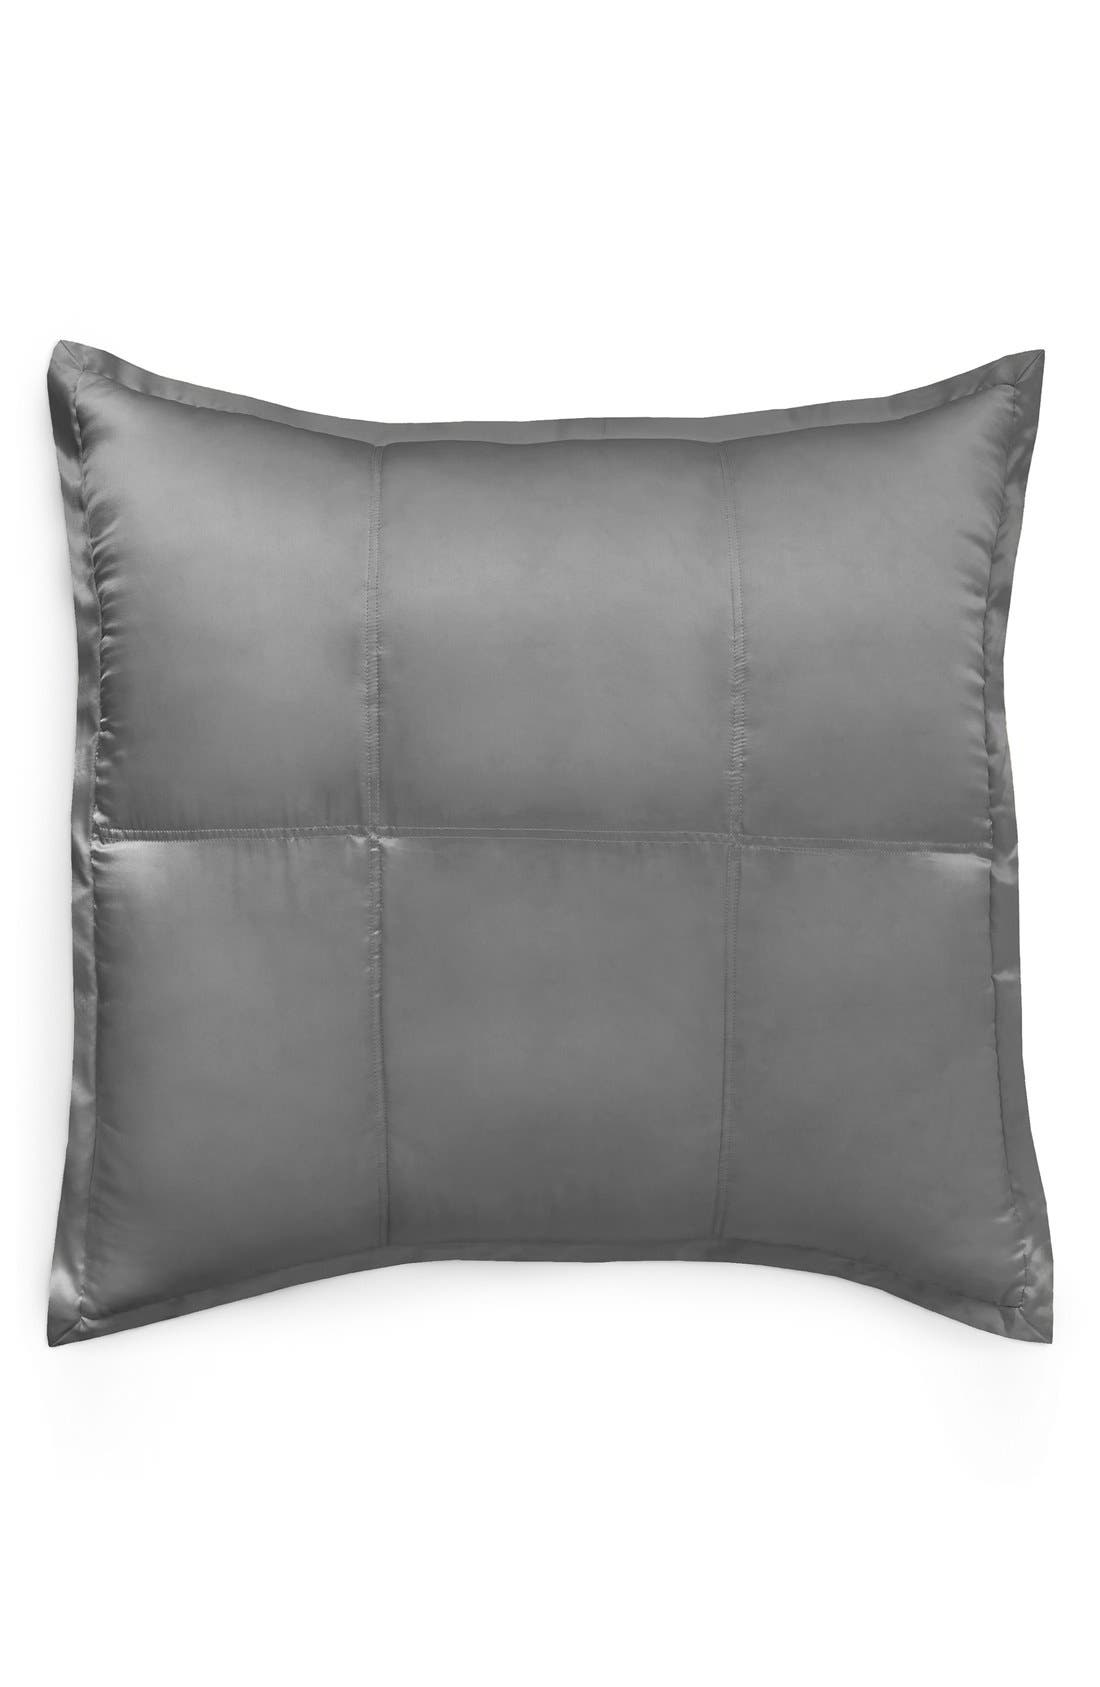 Donna Karan Collection 'Surface' Silk Charmeuse Euro Pillow Sham,                         Main,                         color, Charcoal